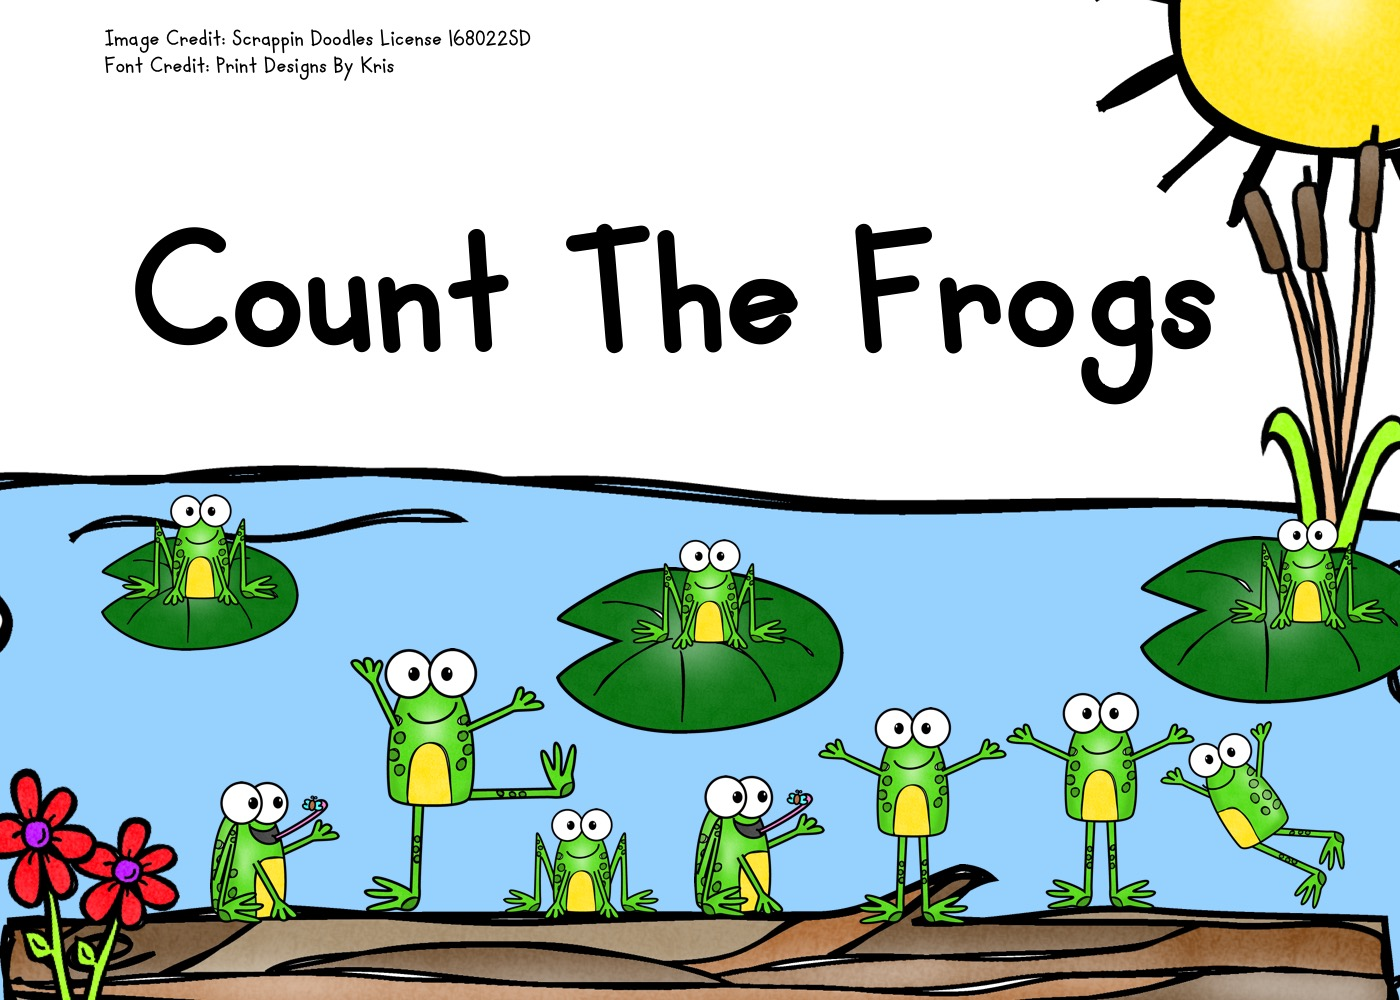 Count The Frogs 1-10